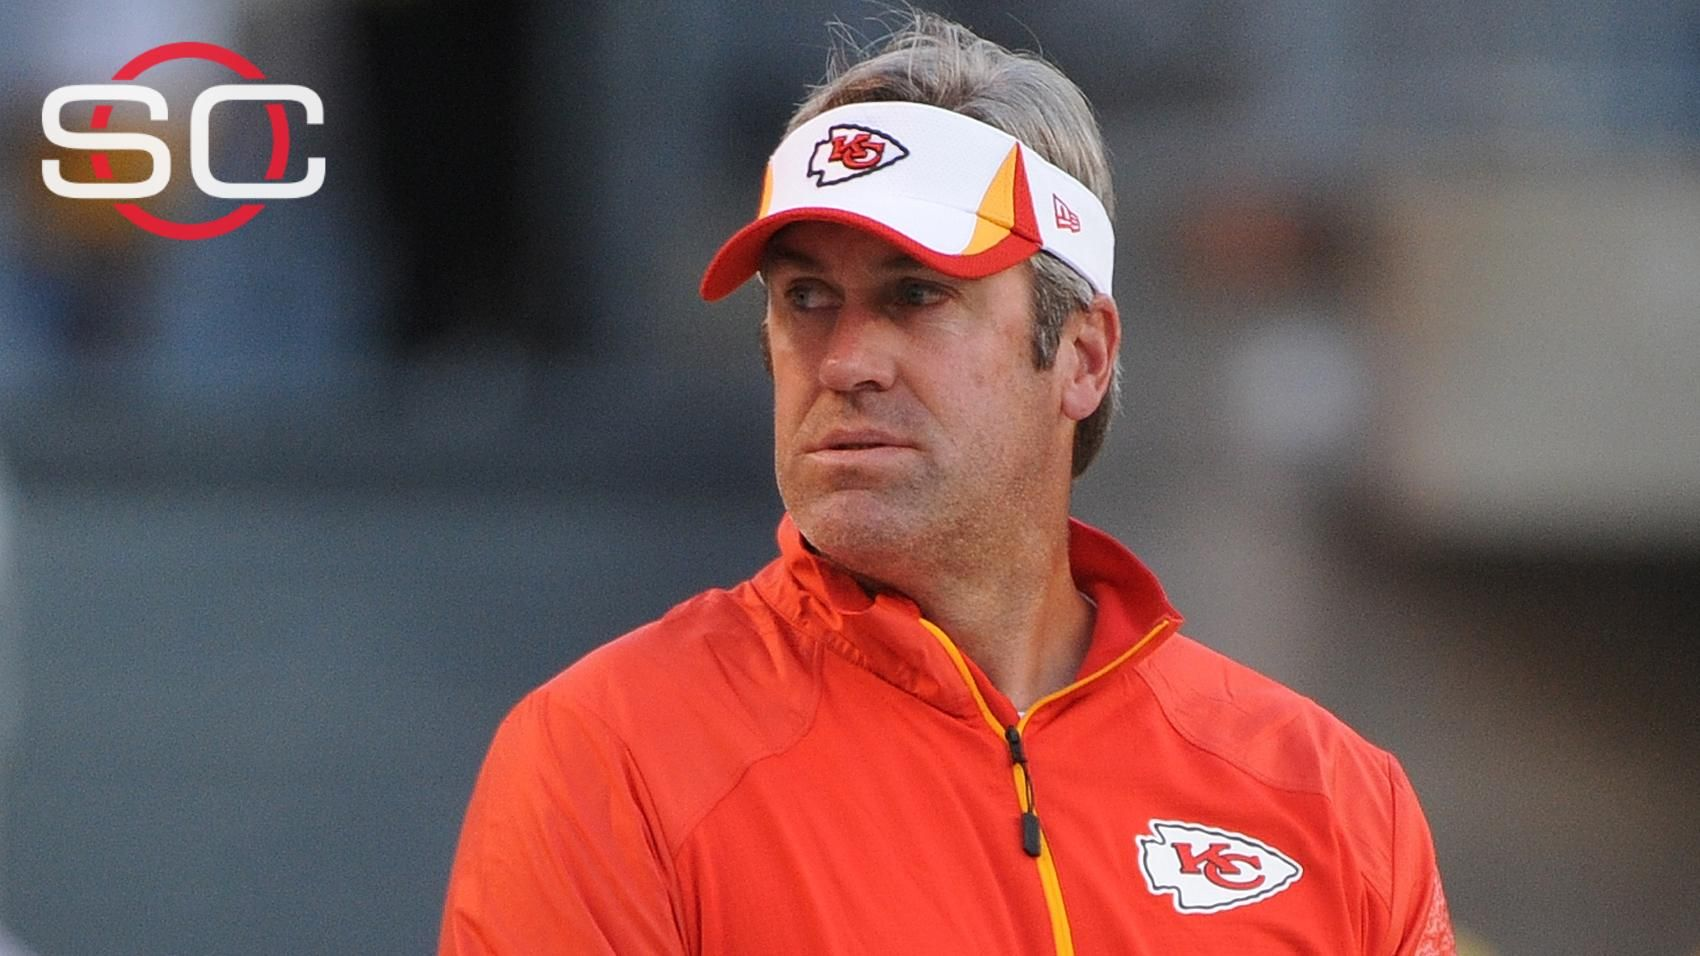 Eagles expected to hire Doug Pederson